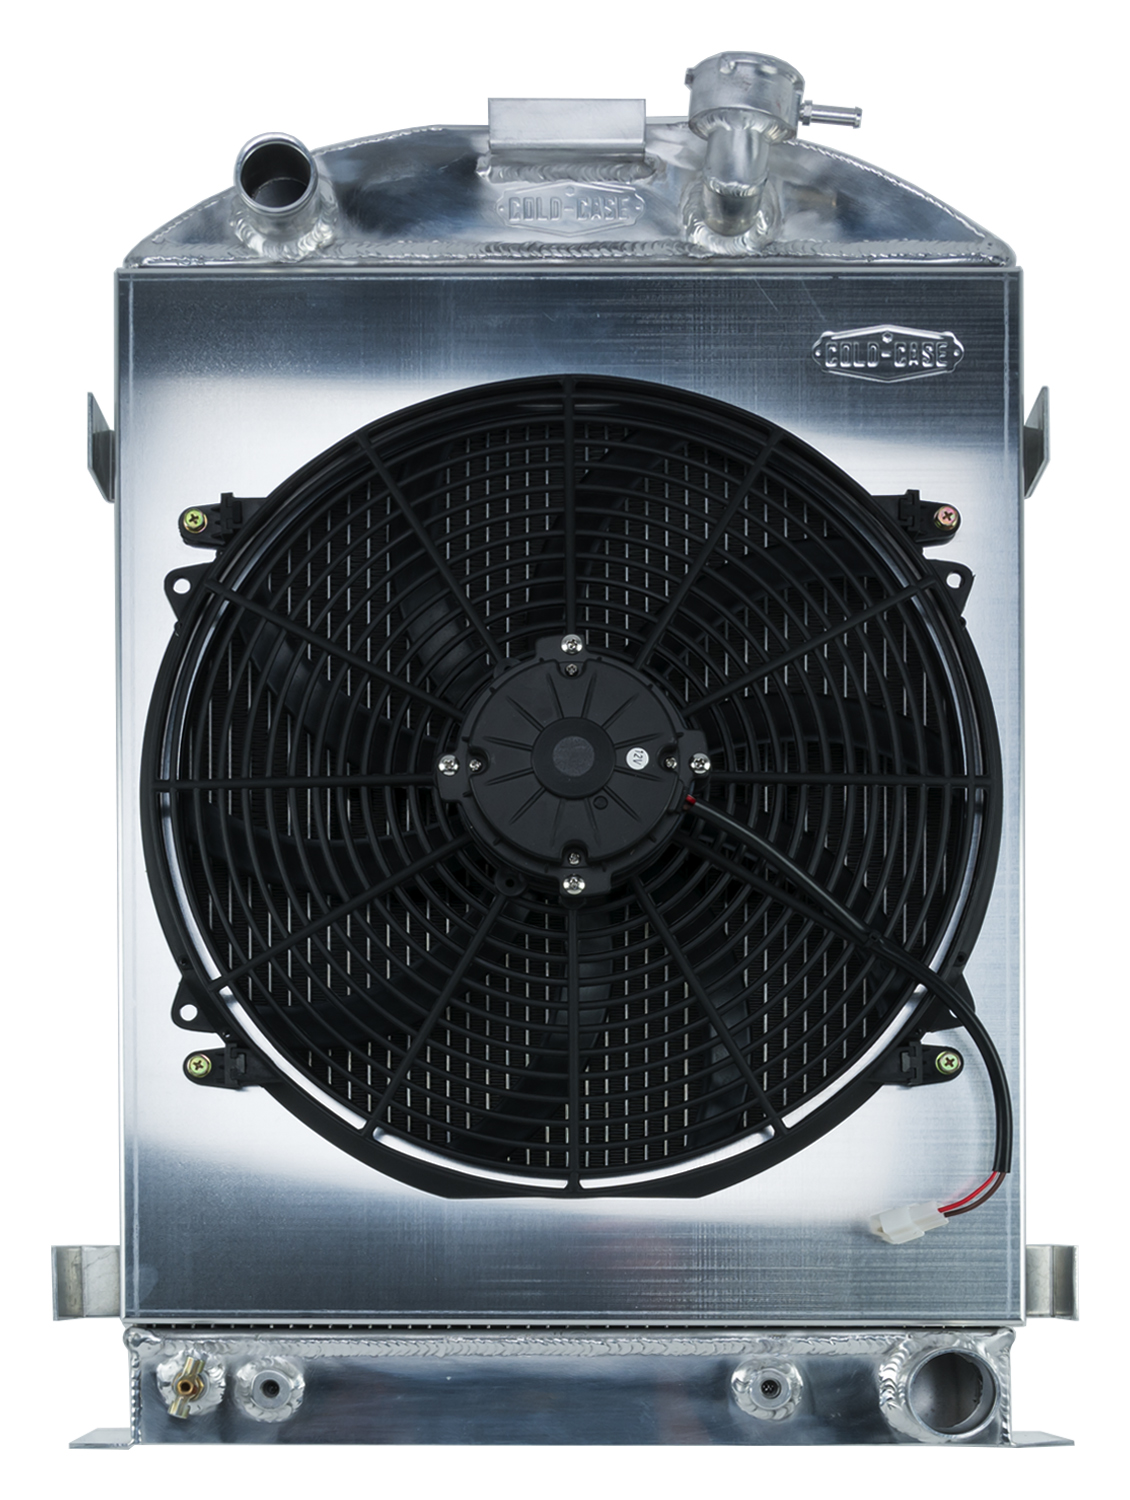 Cold Case 1932 Highboy Chevy Engine 27 Inch Aluminum Performance Radiator And 16 Inch Fan Kit